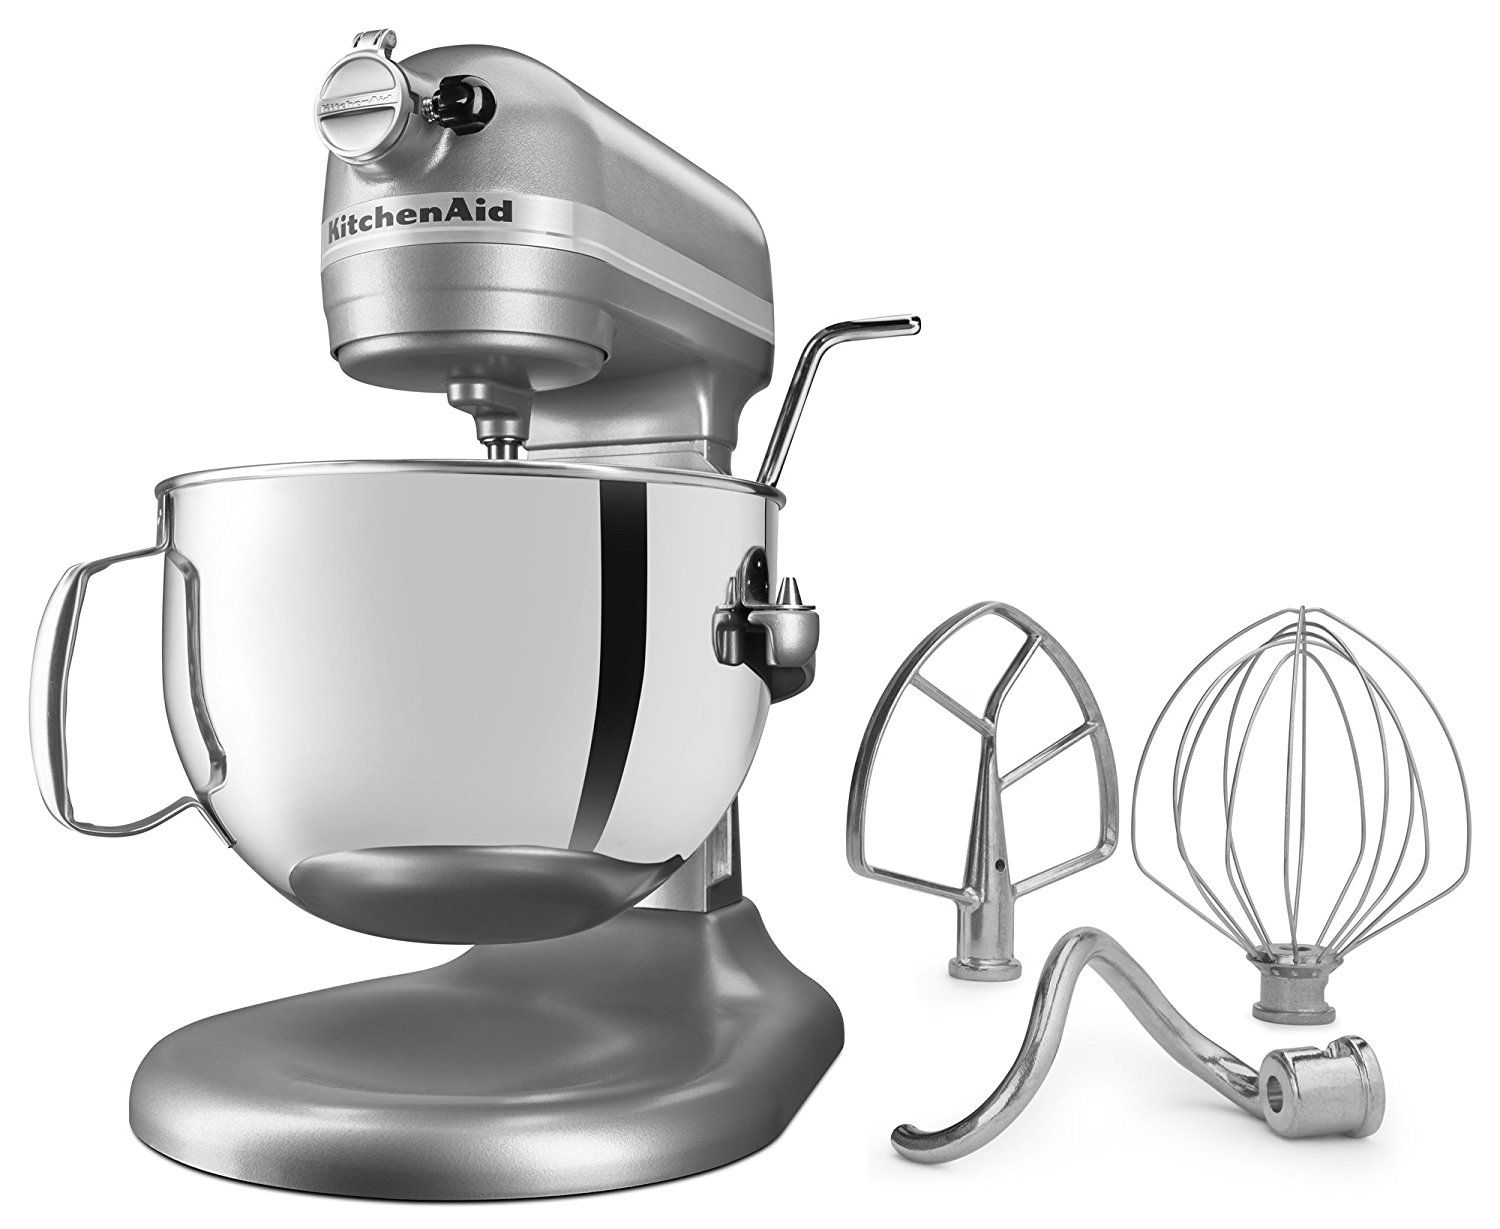 KitchenAid KL26M1XSL Professional 6-Qt. Bowl-Lift Stand Mixer ...